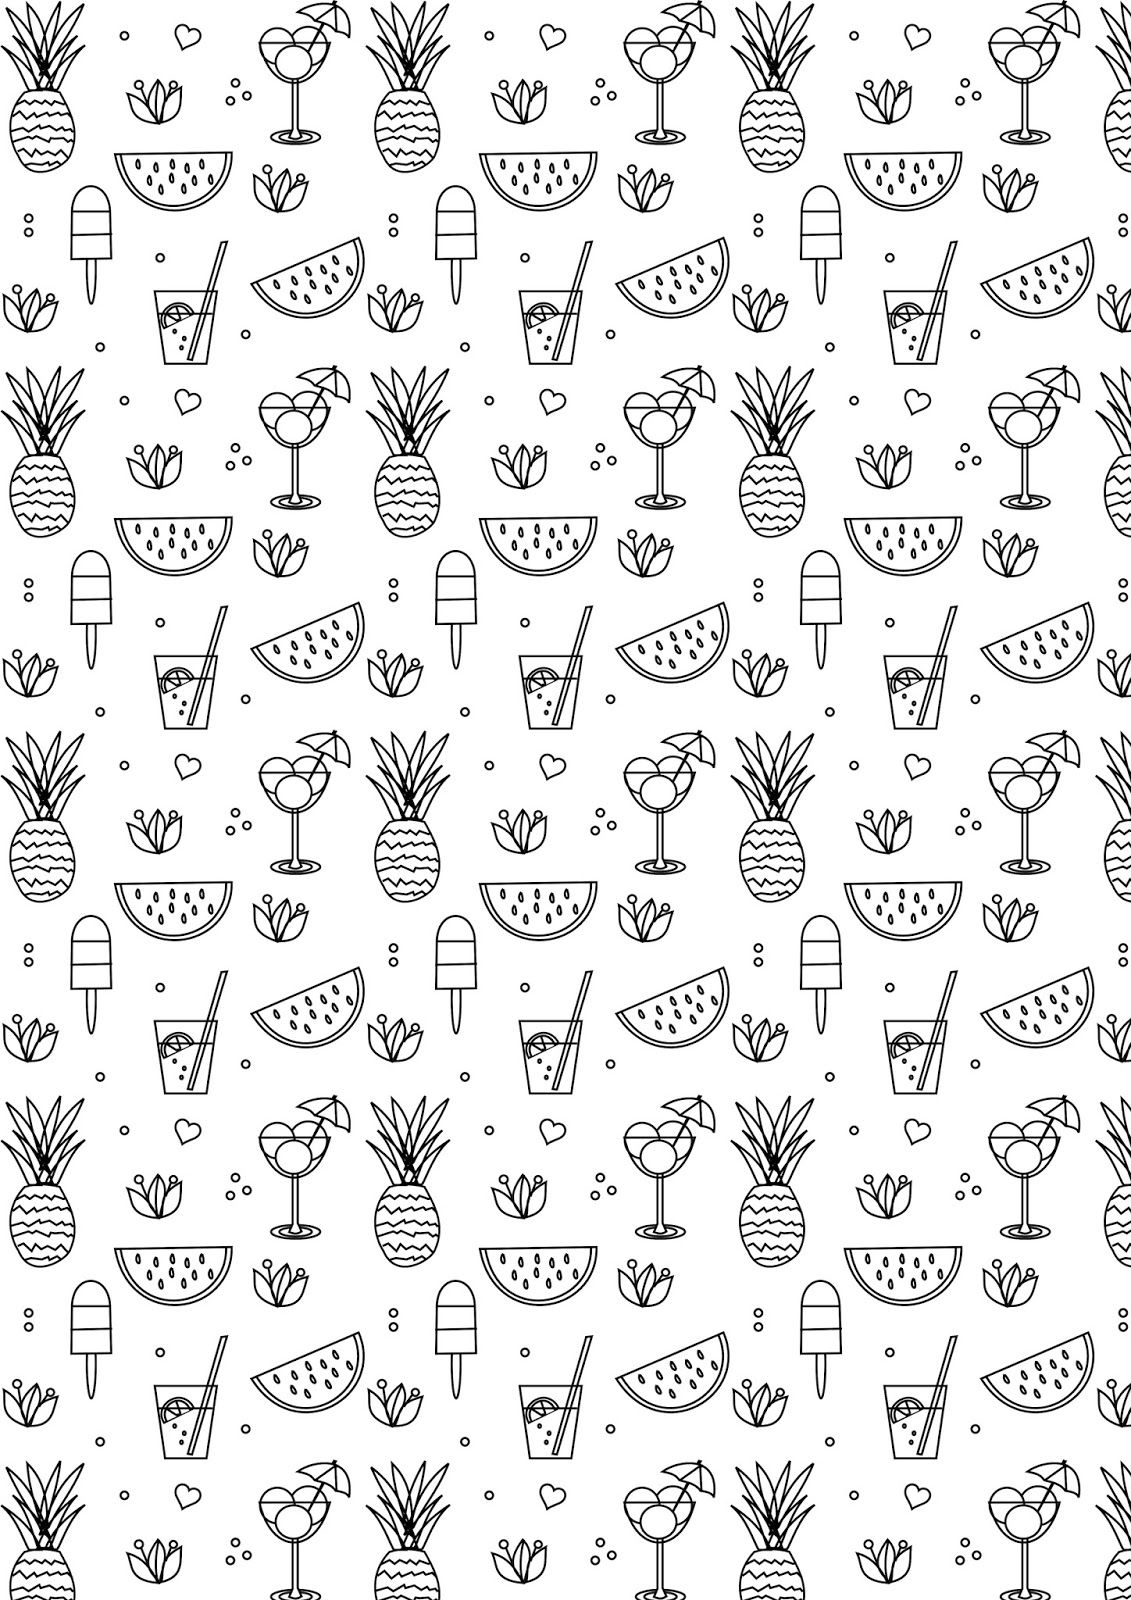 coloring pages free summer wallpaper - photo#12